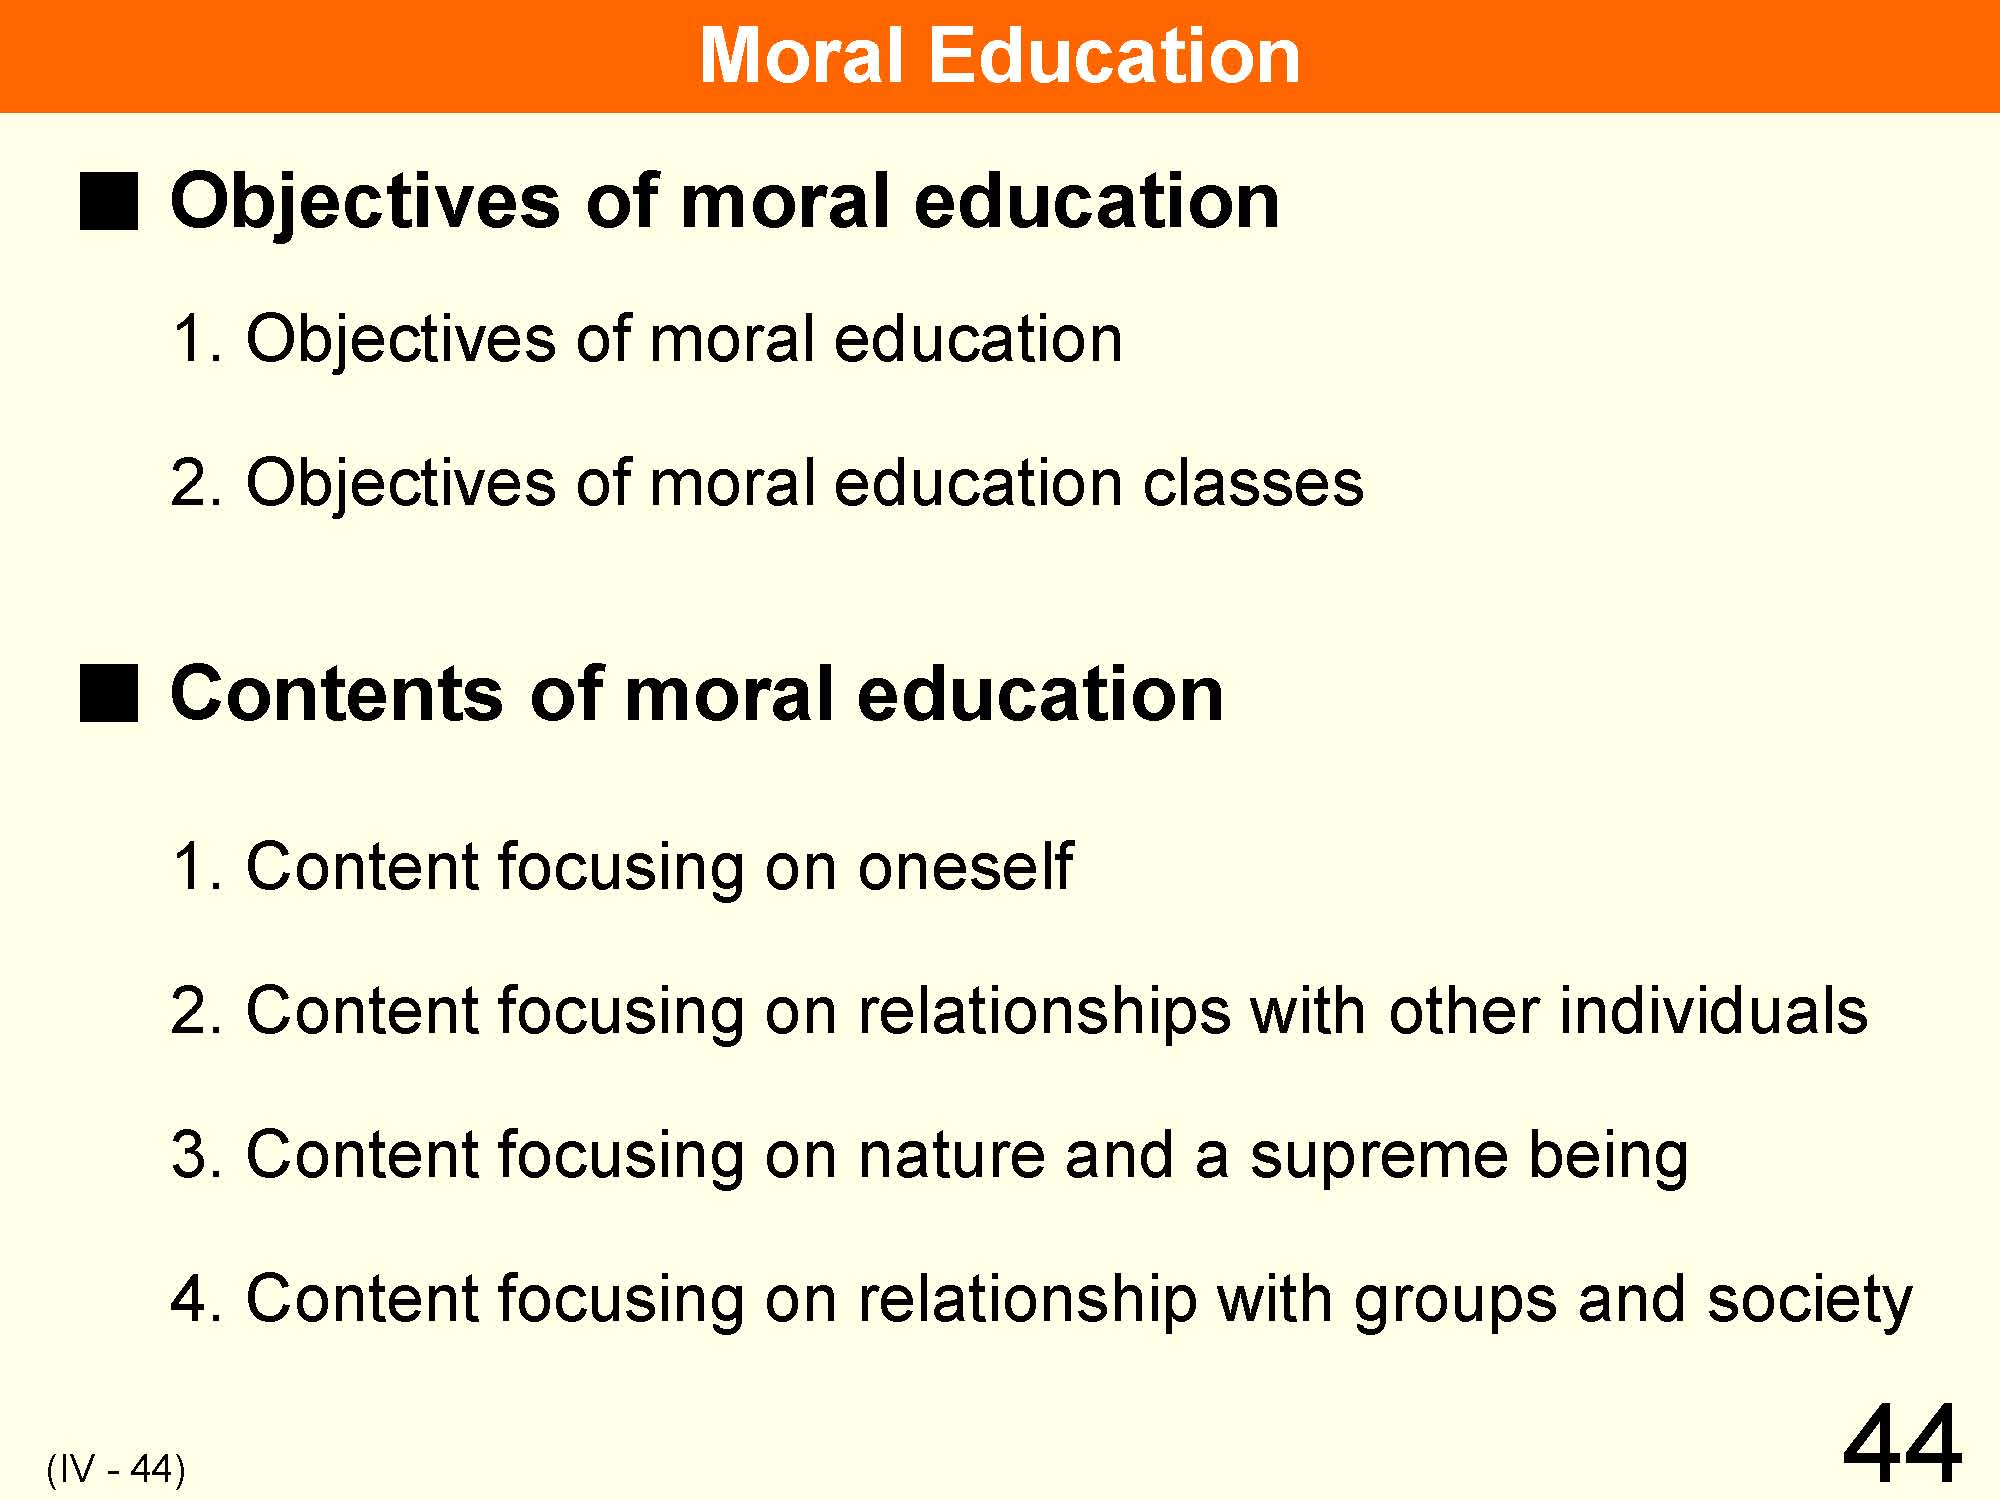 essay on importance of moral values in education Moral values for students are missing in our educational curriculum today   which is the most important moral value for students to learn.